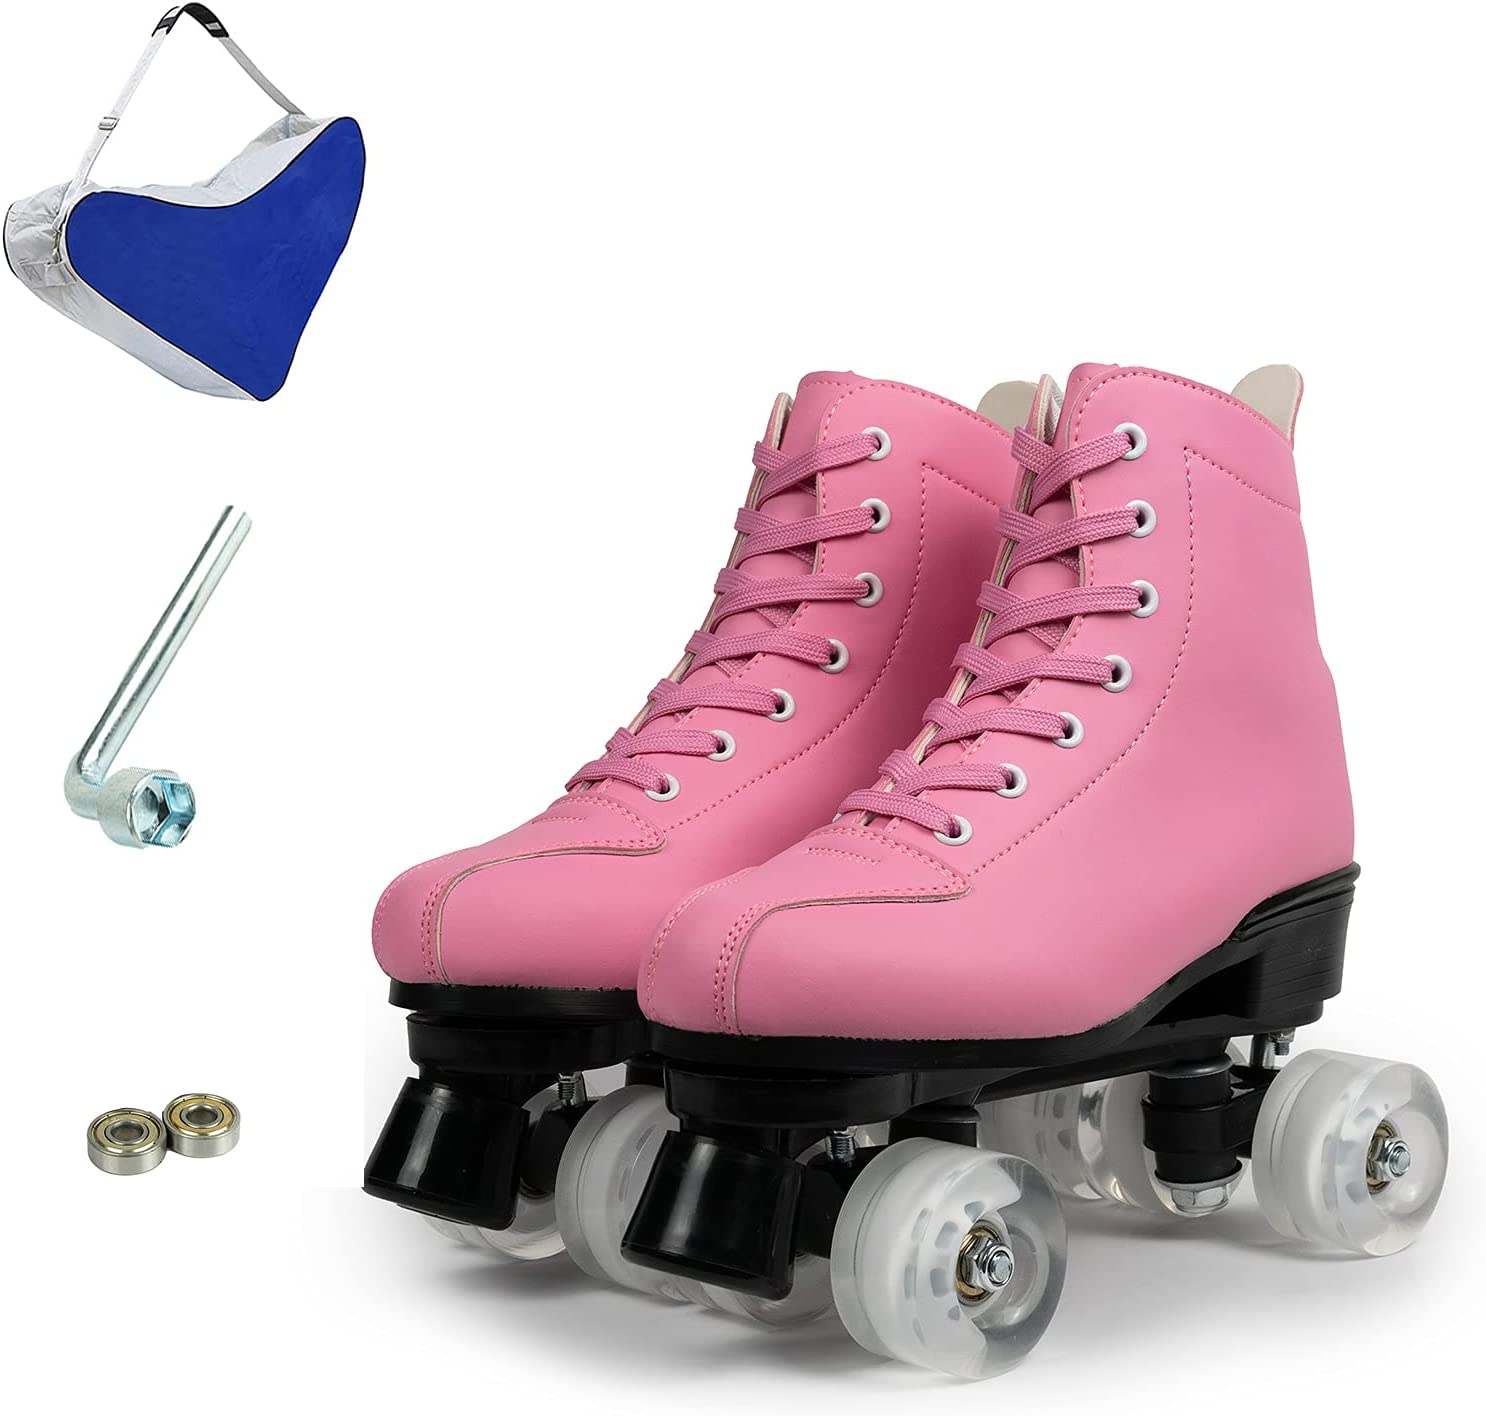 ZZAINIO Cheap bargain Women's Classic Roller Skates low-pricing PU High-to Leather Premium